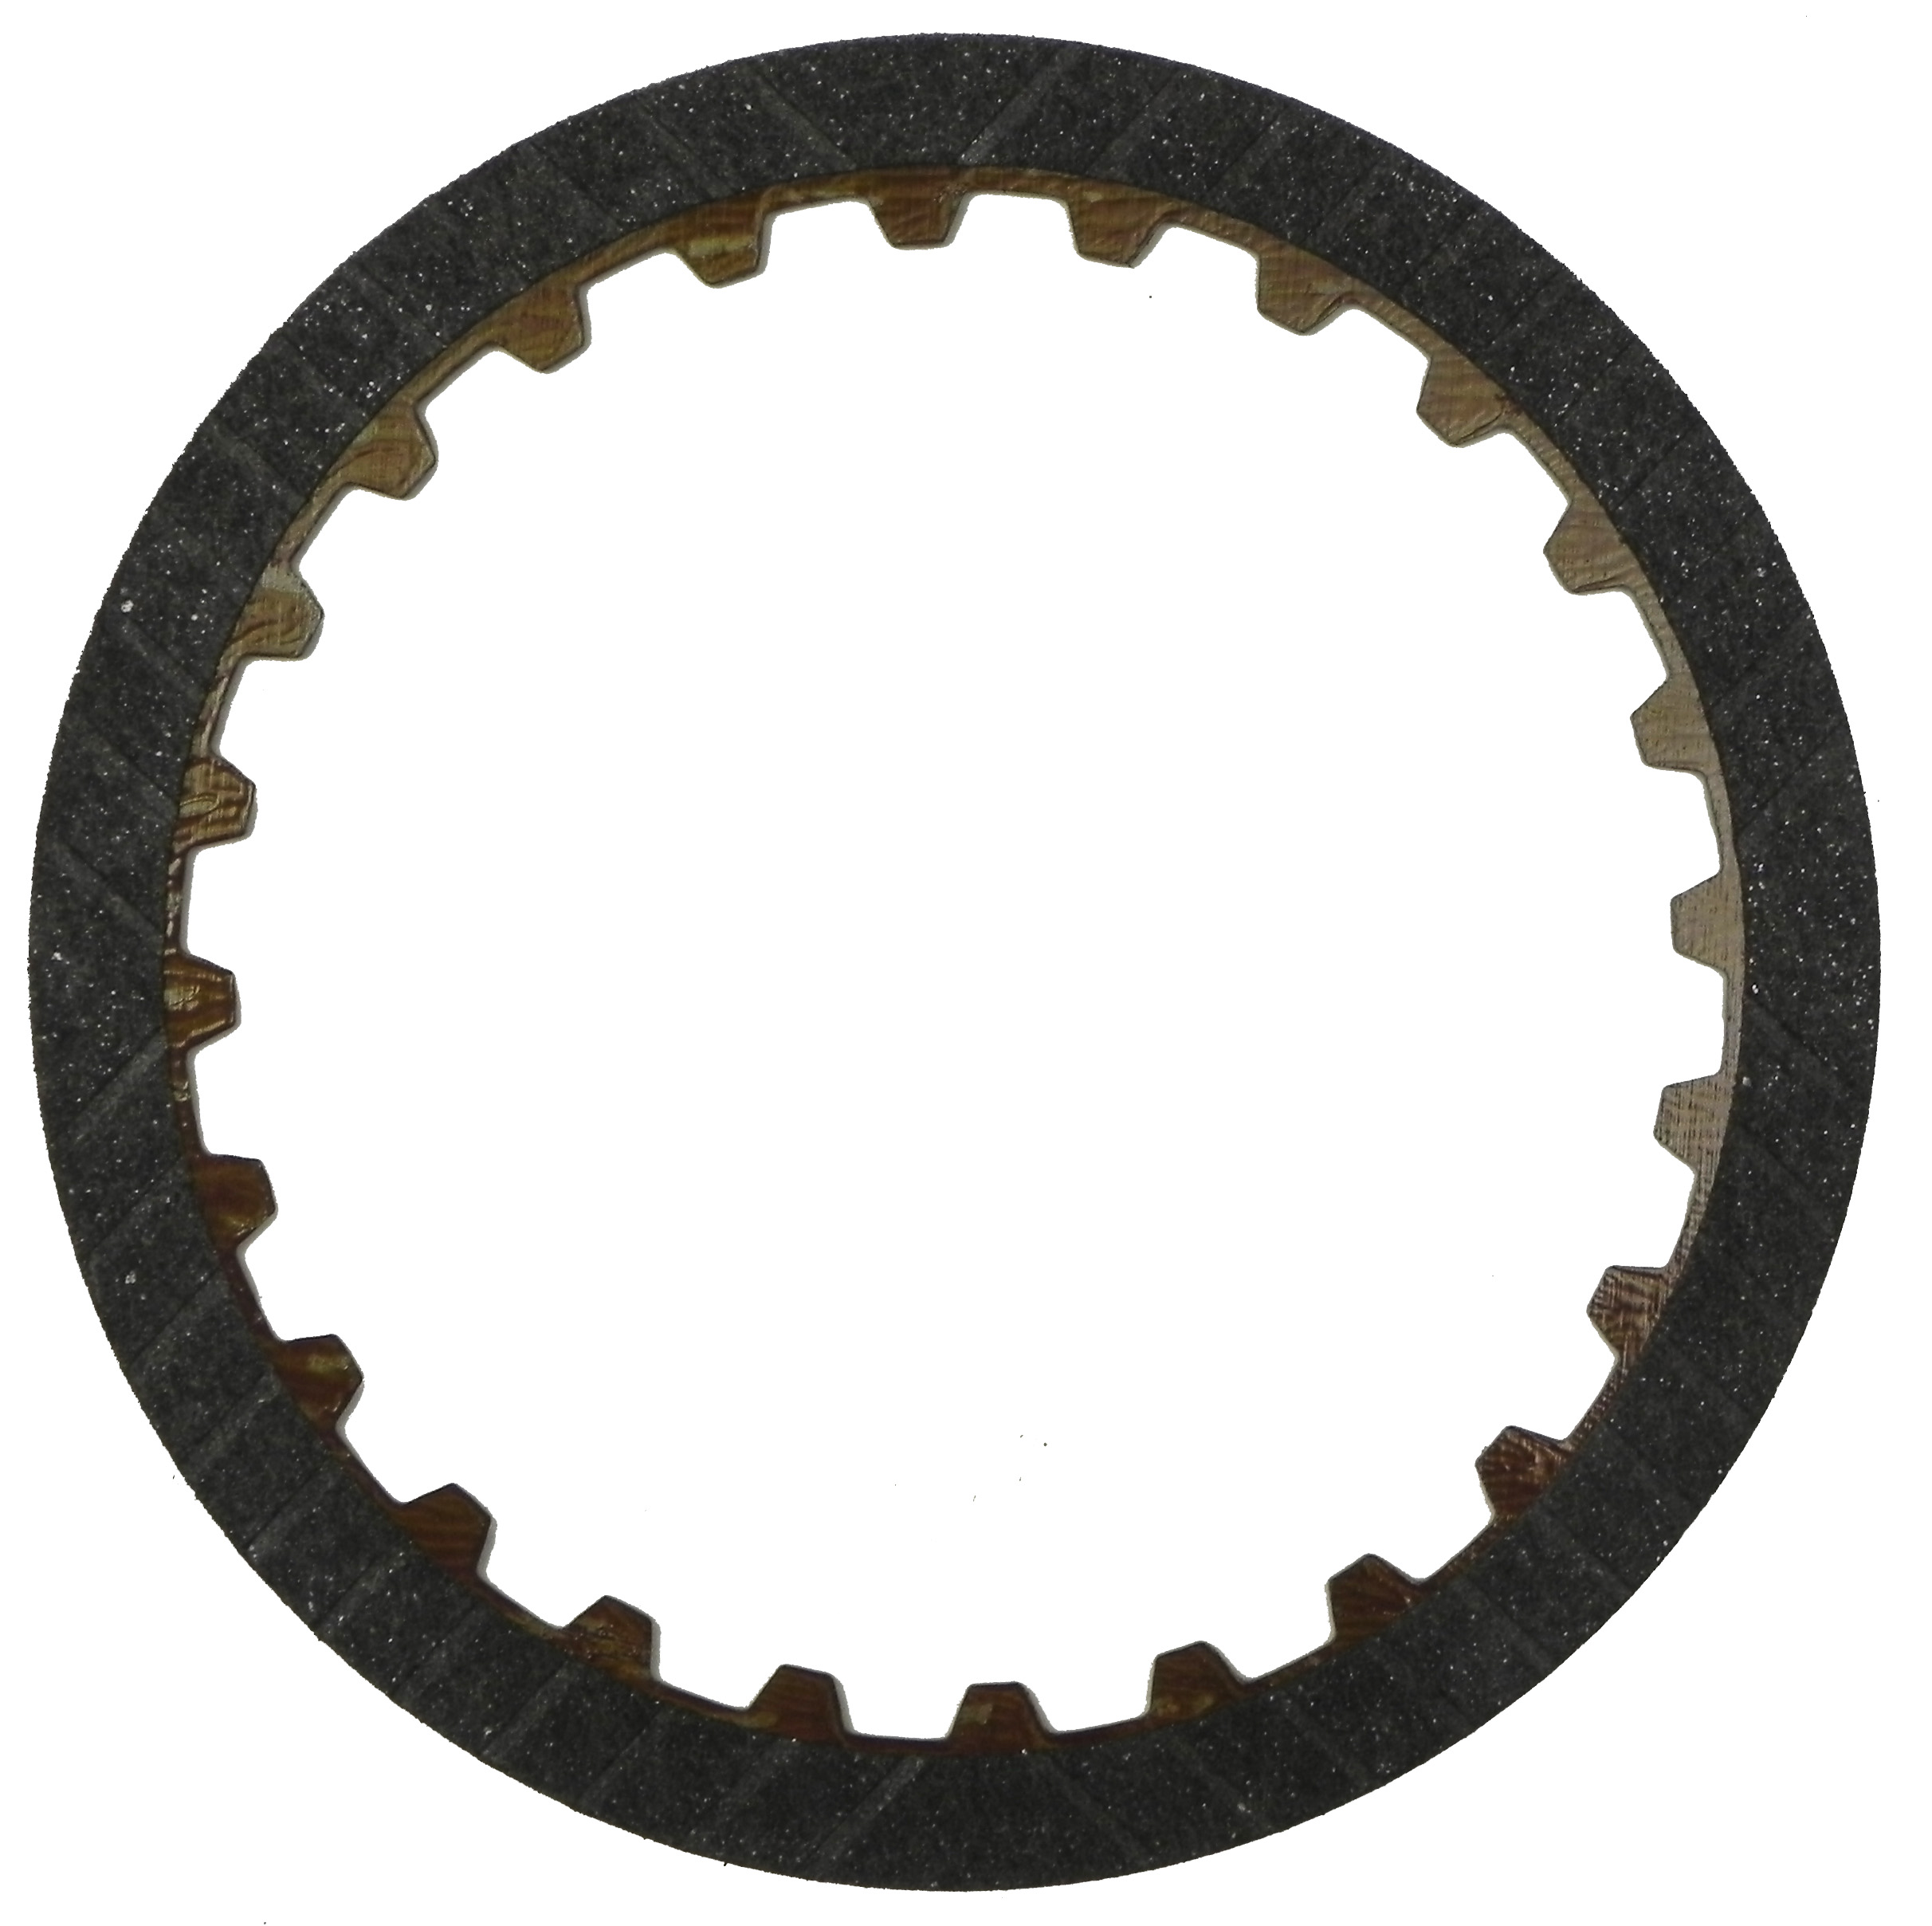 JF506E, 5F31, 5F31J, 09A, AG5, RE5F01A High Energy Friction Clutch Plate